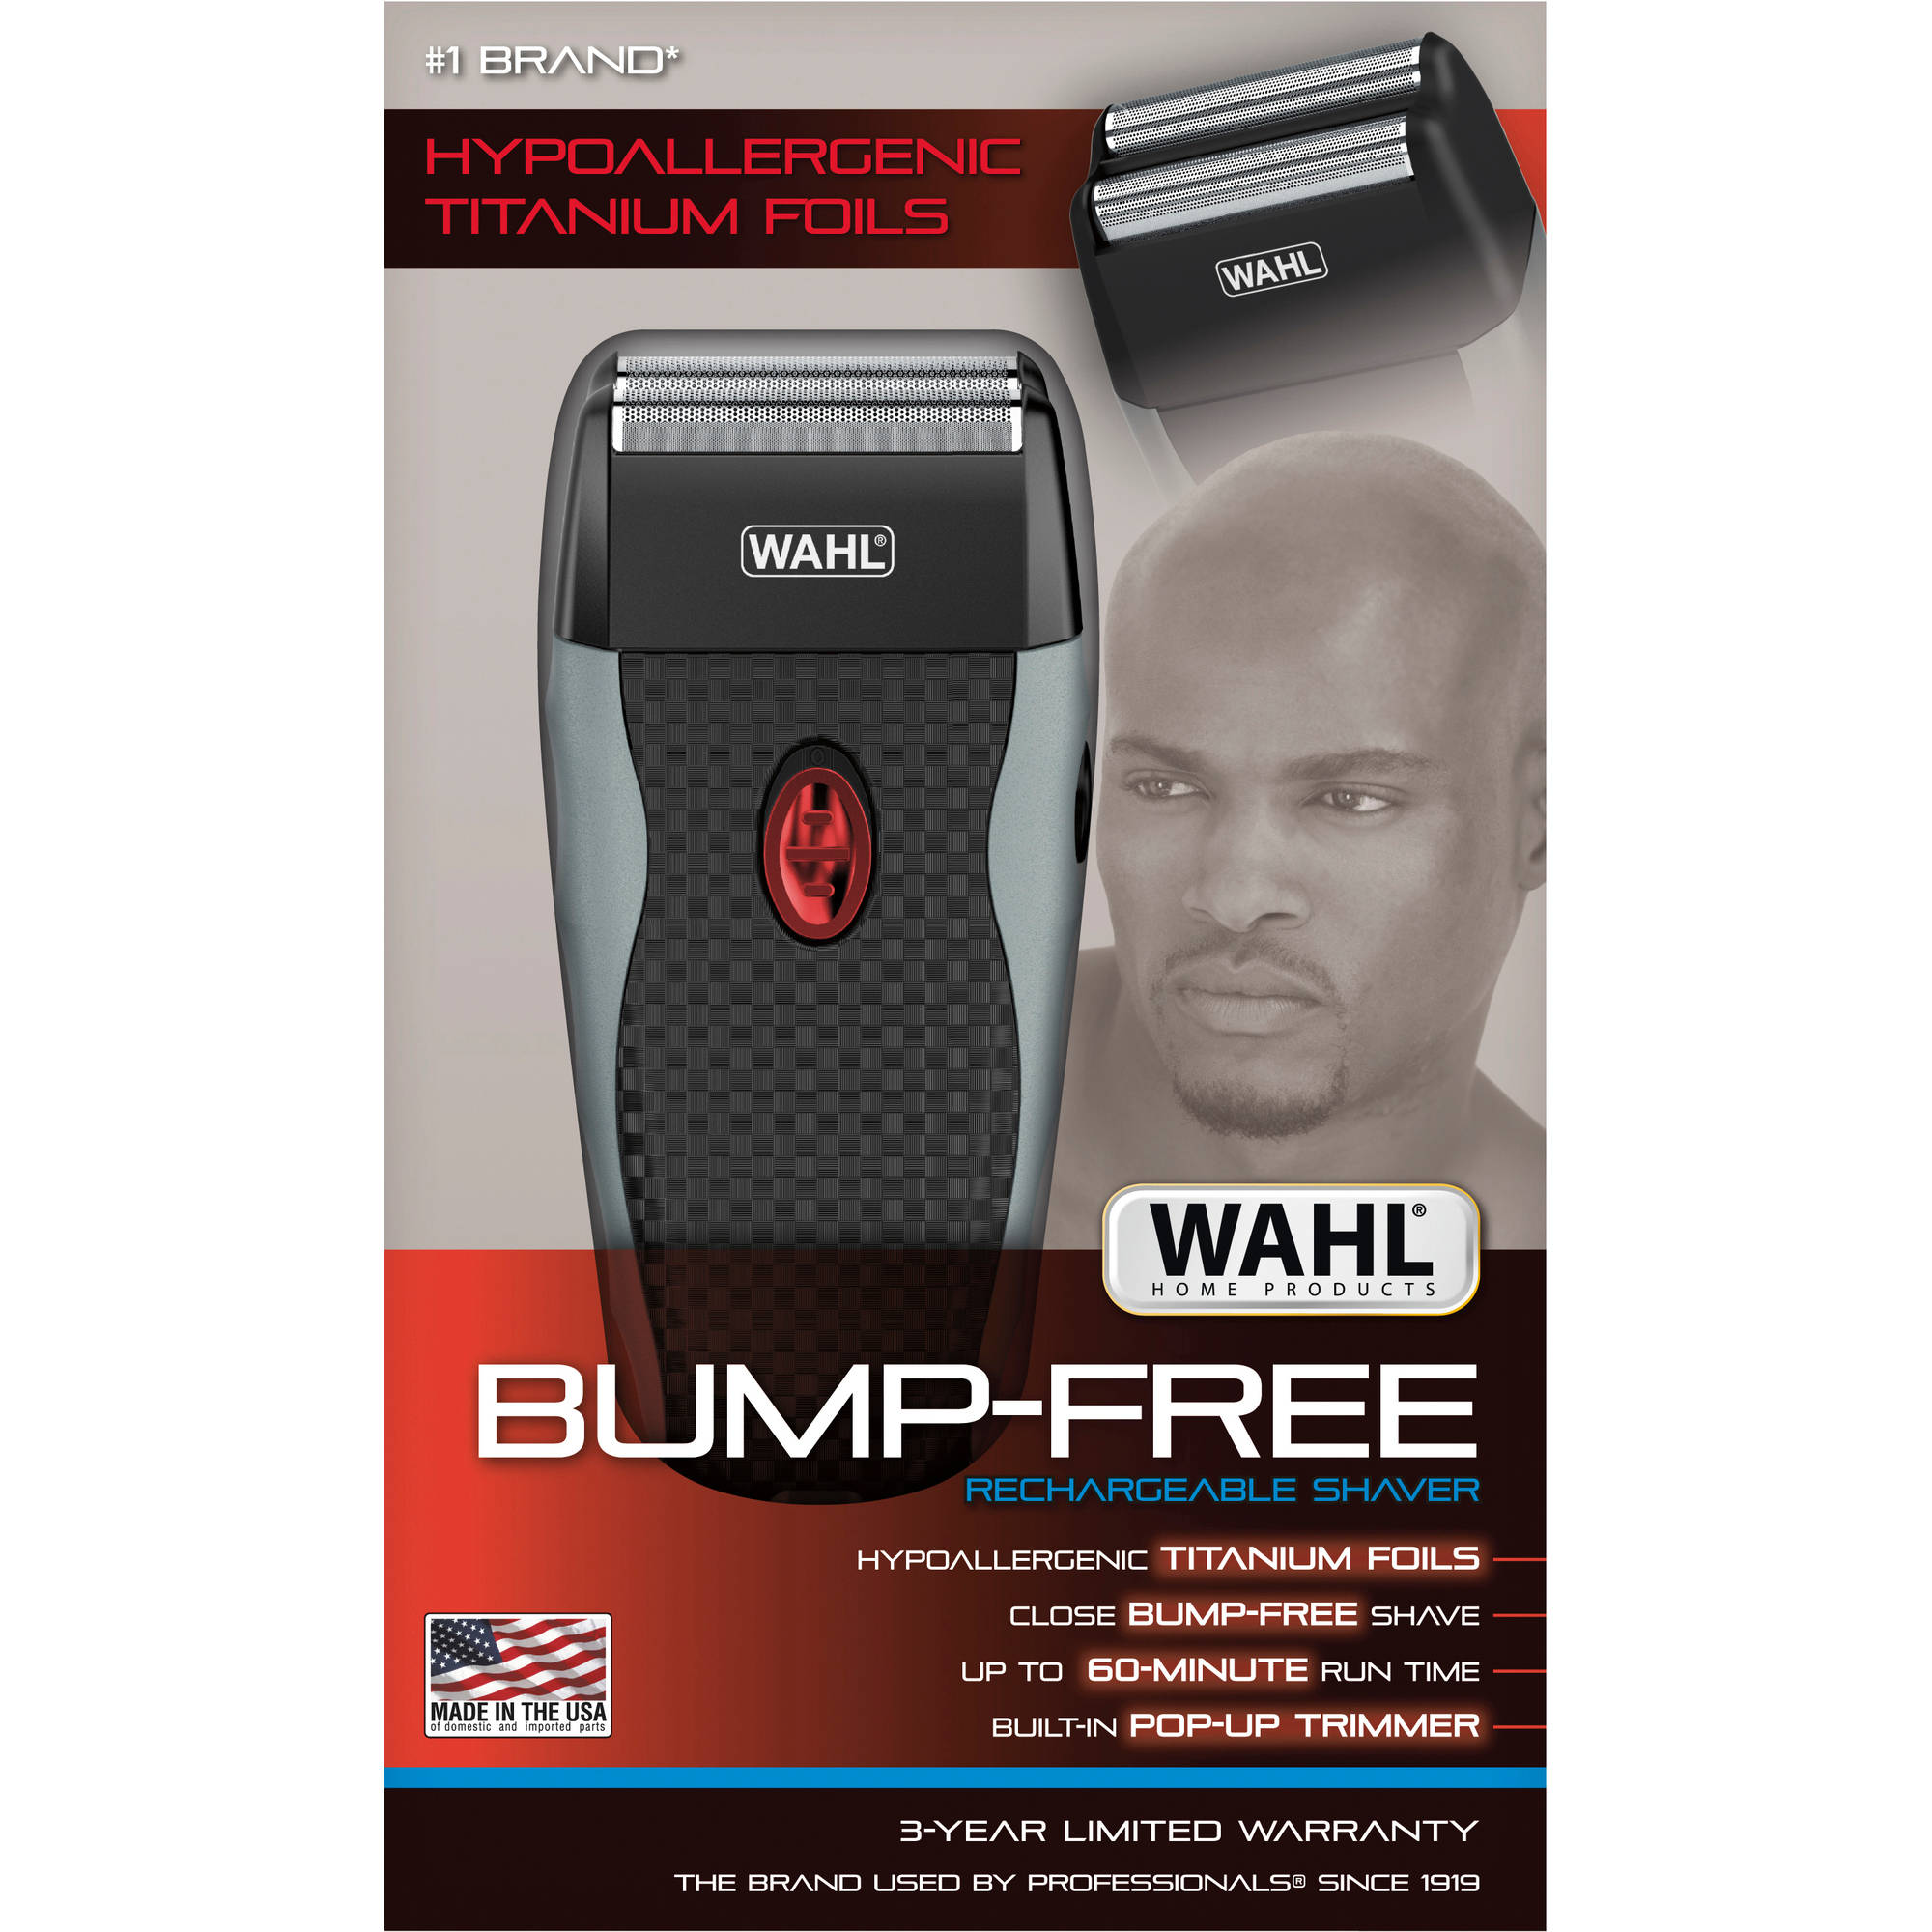 Wahl Home Products Bump-Free Rechargeable Shaver